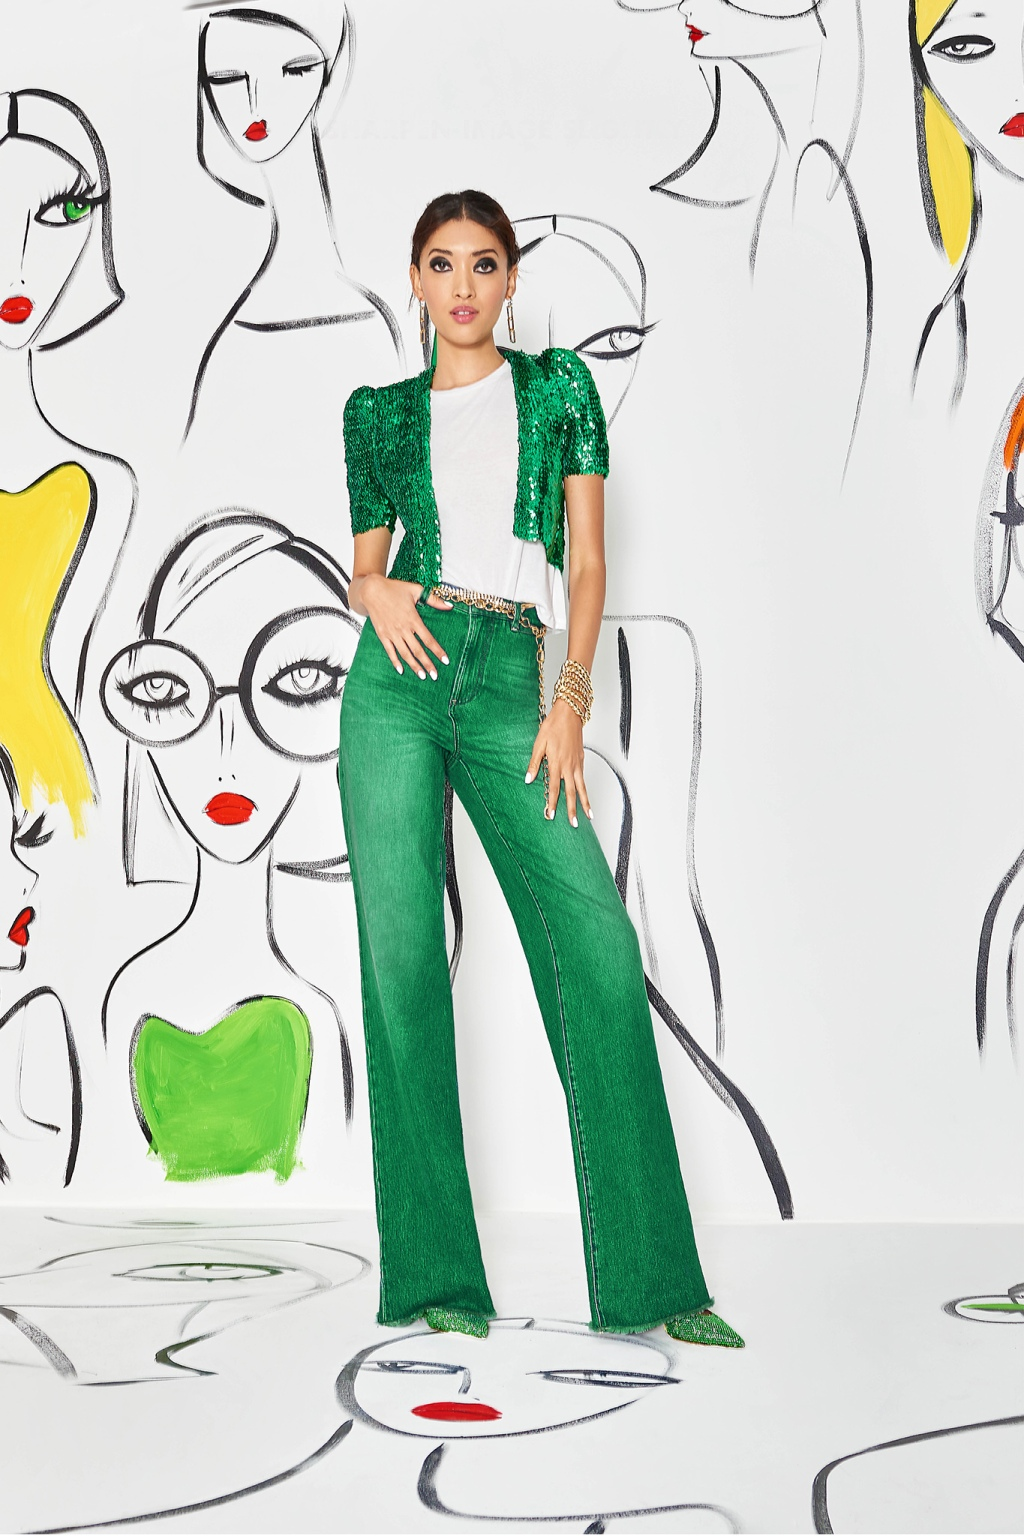 Alice + Olivia by Stacey Bendet RTW Spring 2022 – WWD